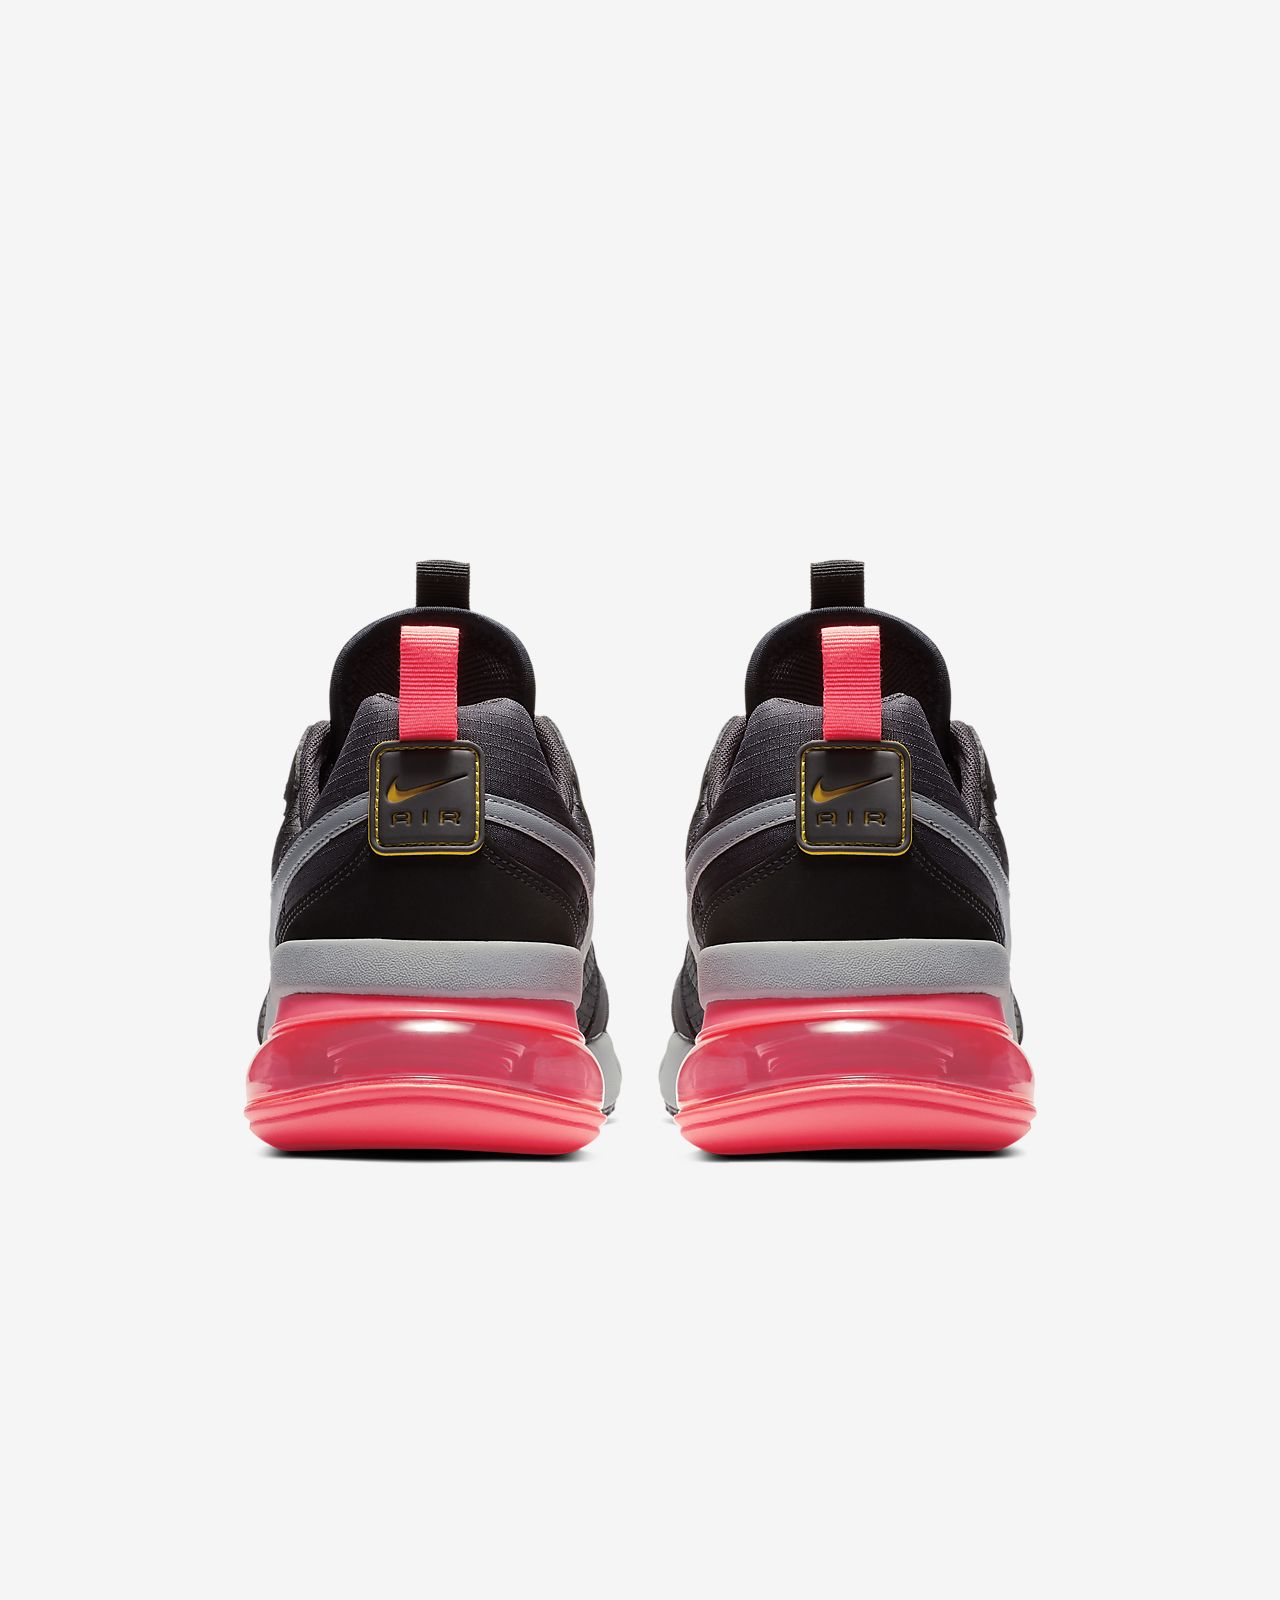 new arrival d01c7 fb42b Low Resolution Nike Air Max 270 Futura Men s Shoe Nike Air Max 270 Futura  Men s Shoe